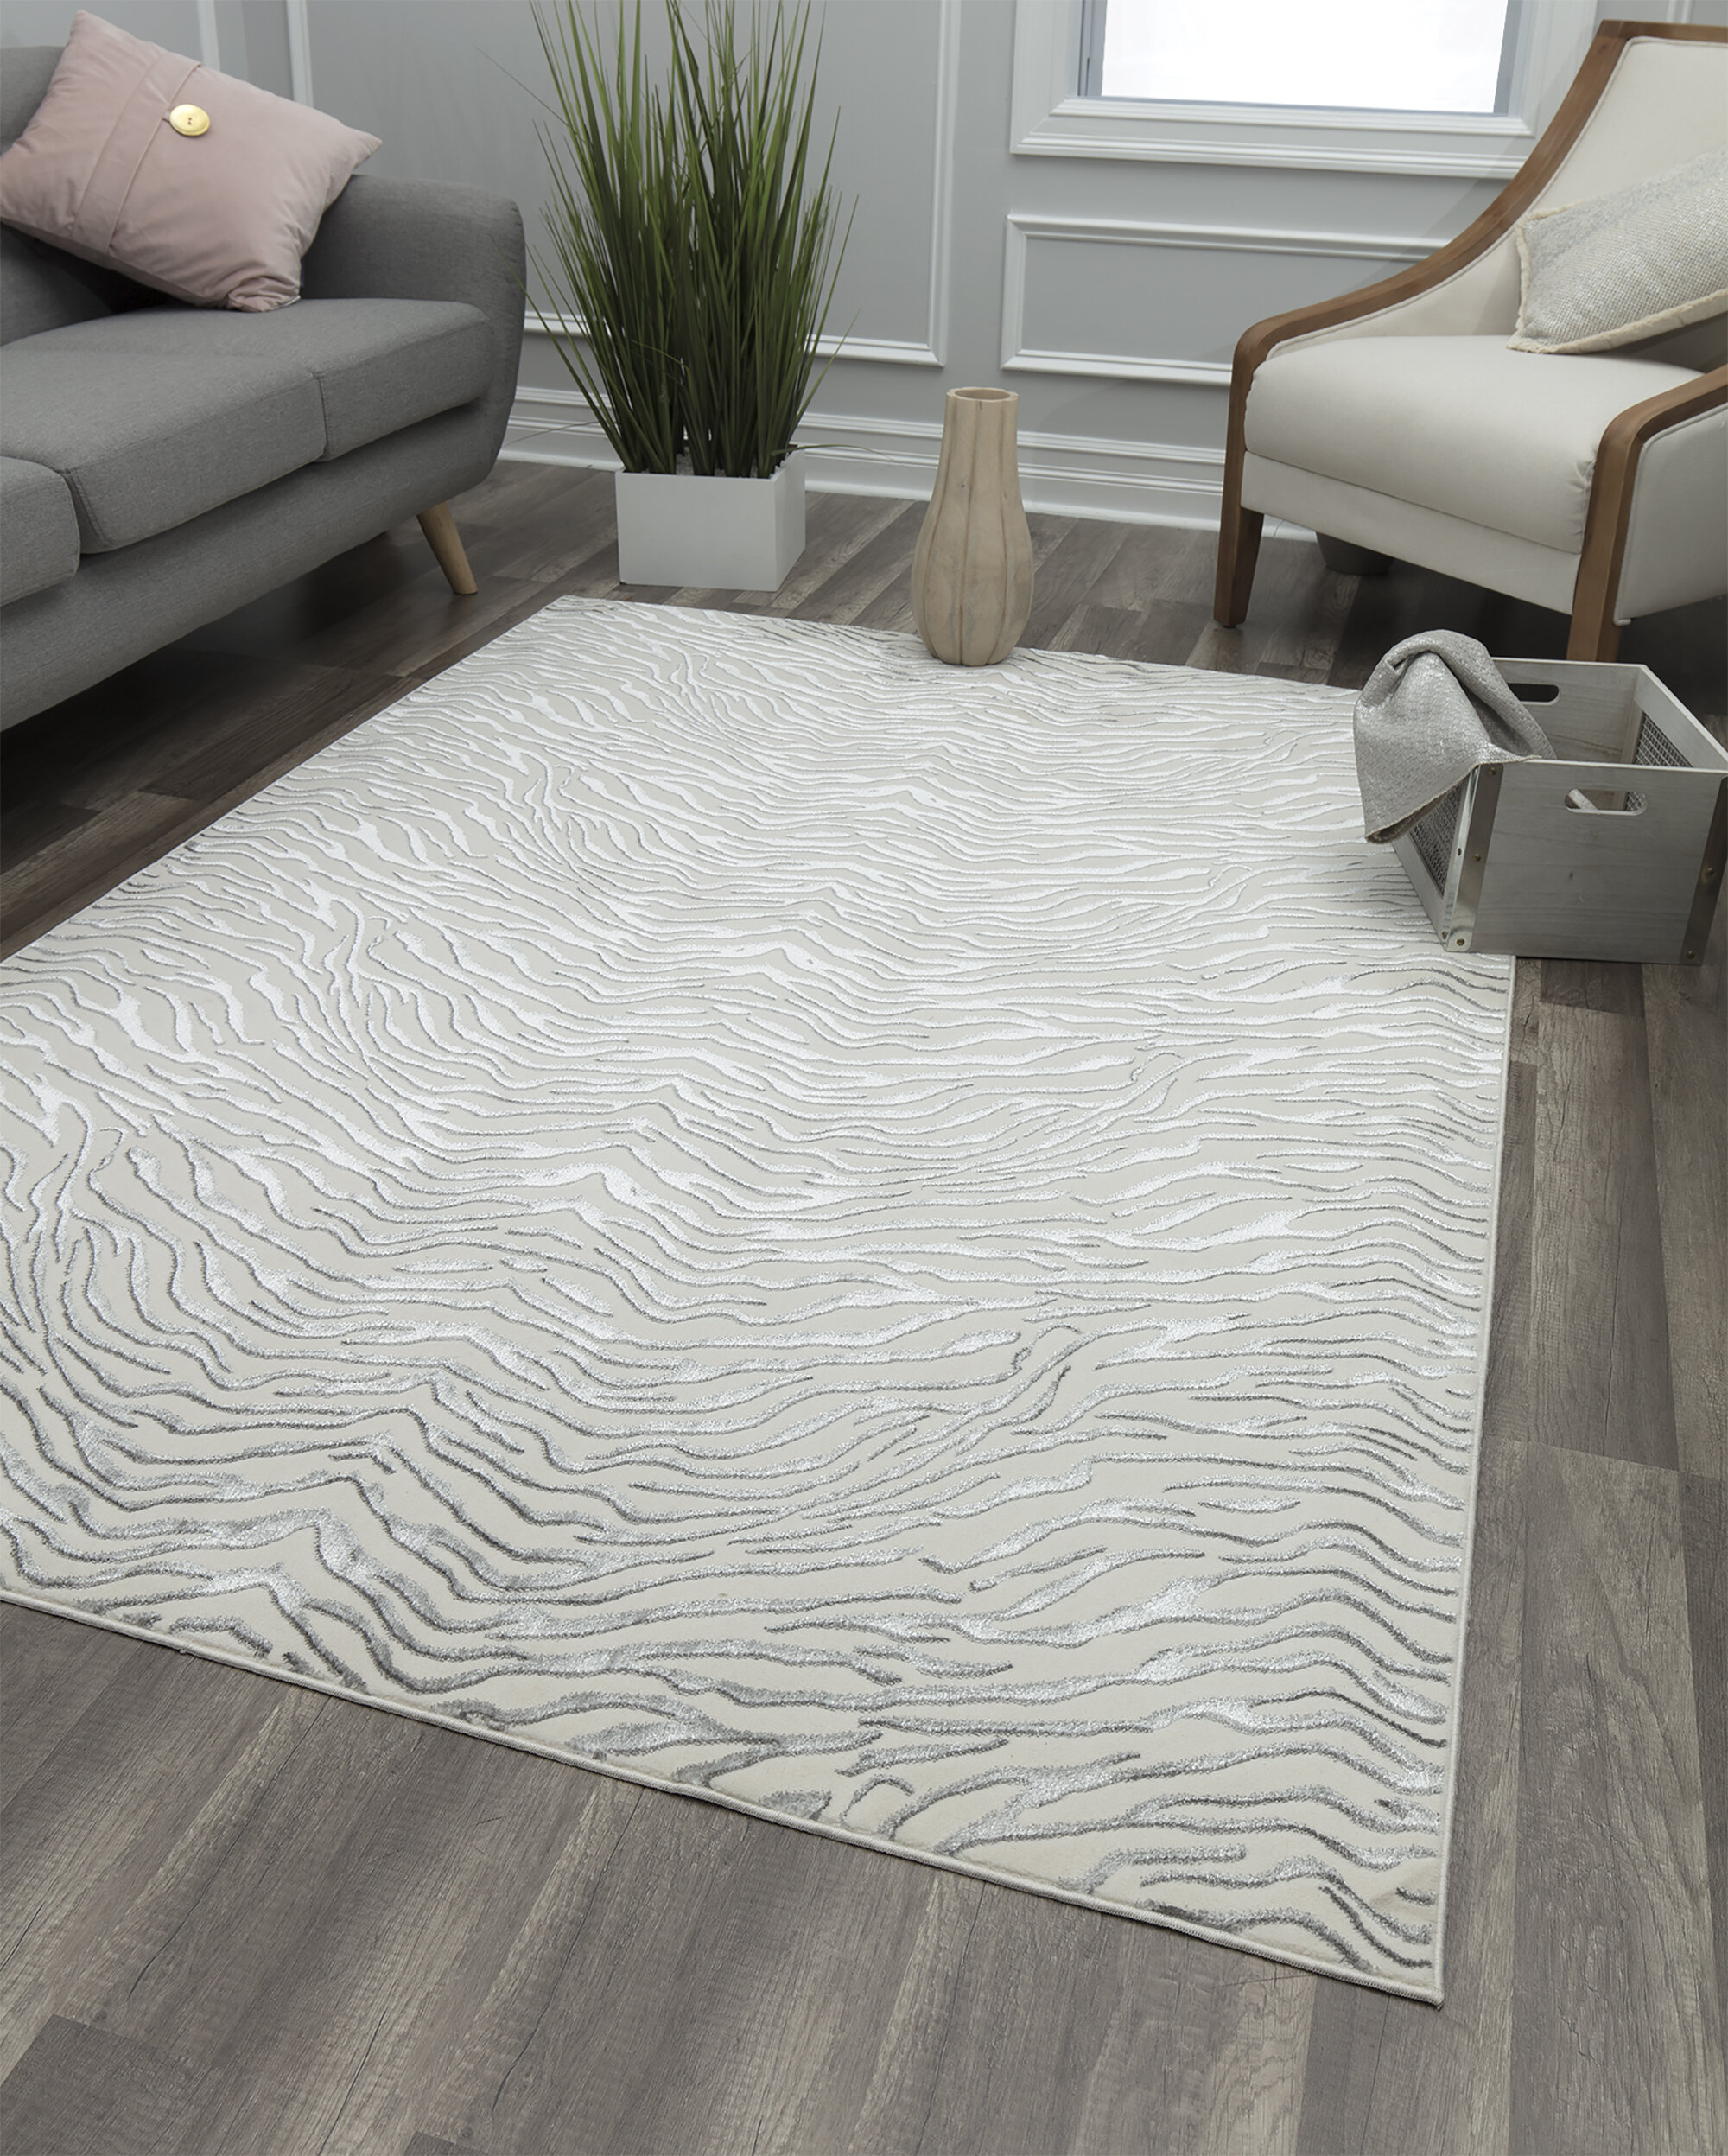 8 X 10 Glam Area Rugs You Ll Love In 2021 Wayfair